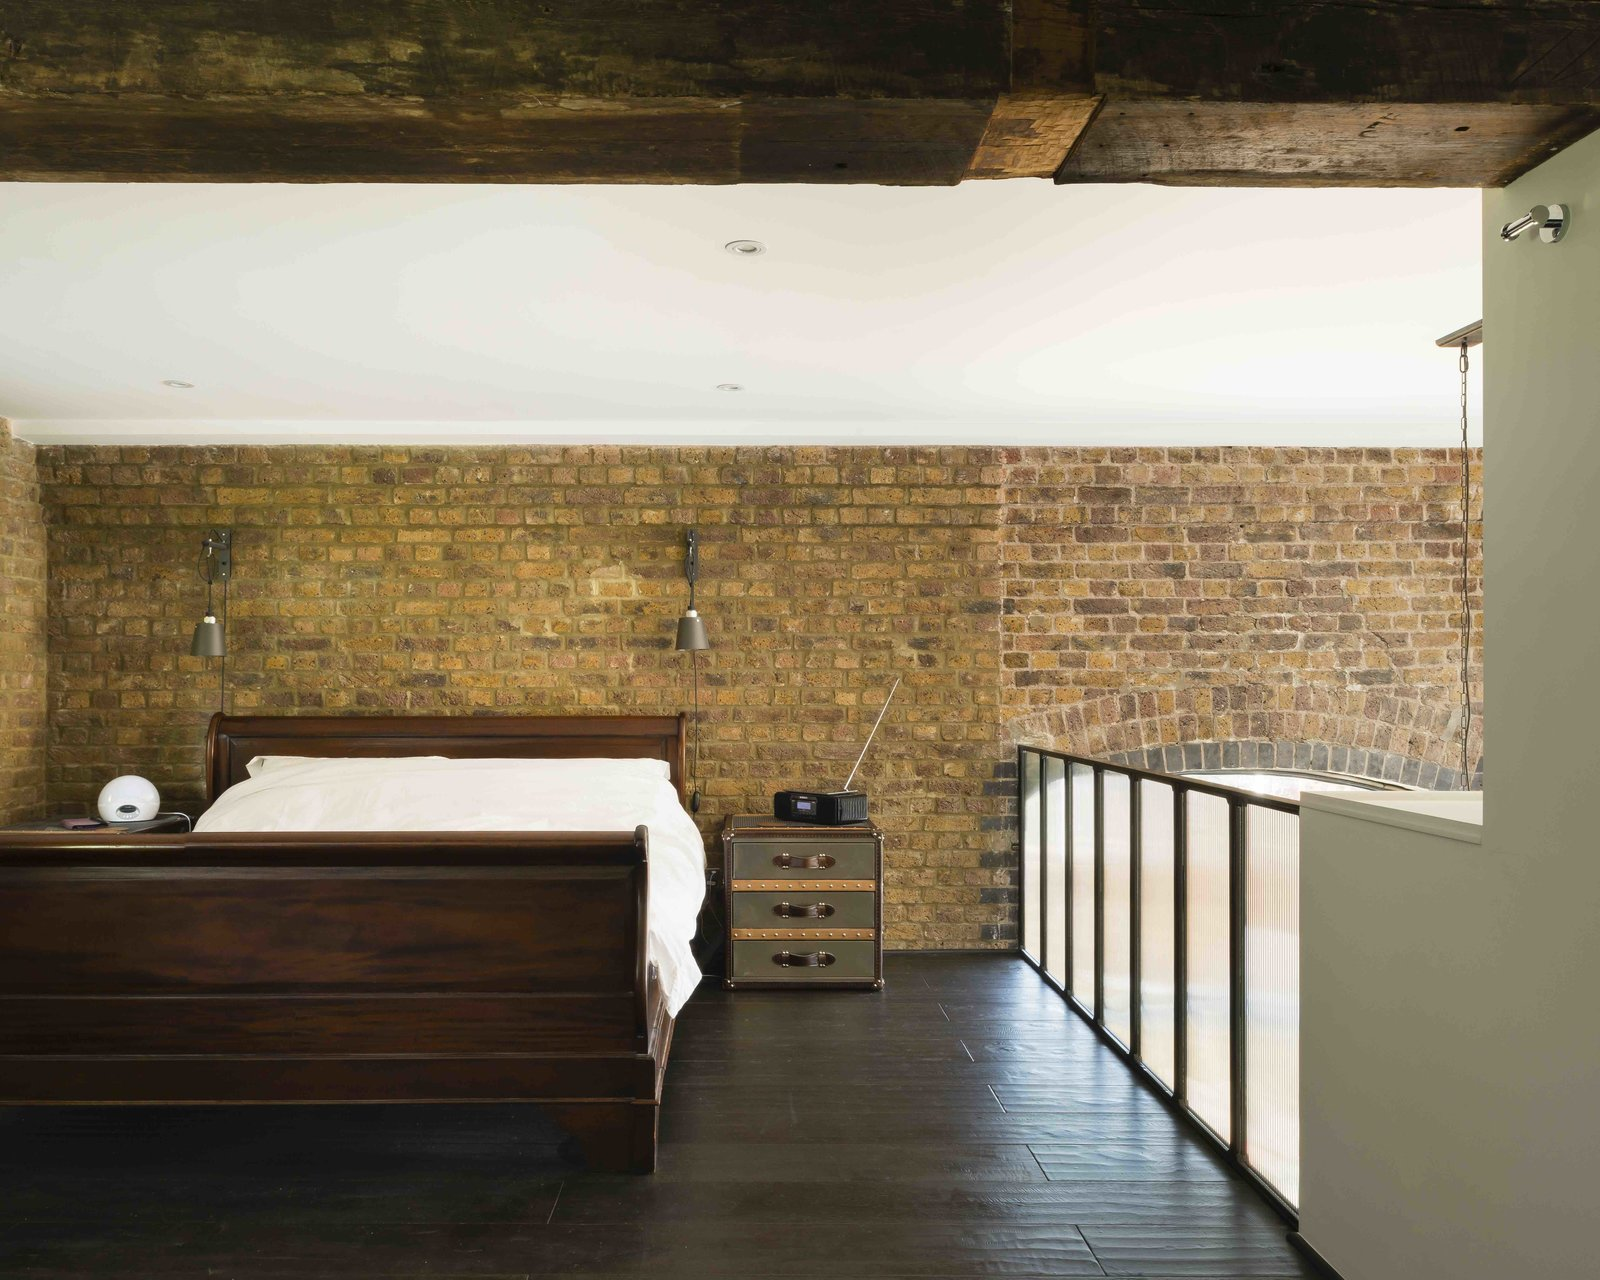 Bedroom, Bed, Night Stands, Wall Lighting, Ceiling Lighting, Recessed Lighting, and Dark Hardwood Floor  Photo 11 of 12 in An Old Grain Warehouse on the River Thames Is Transformed Into an Industrial-Modern Home